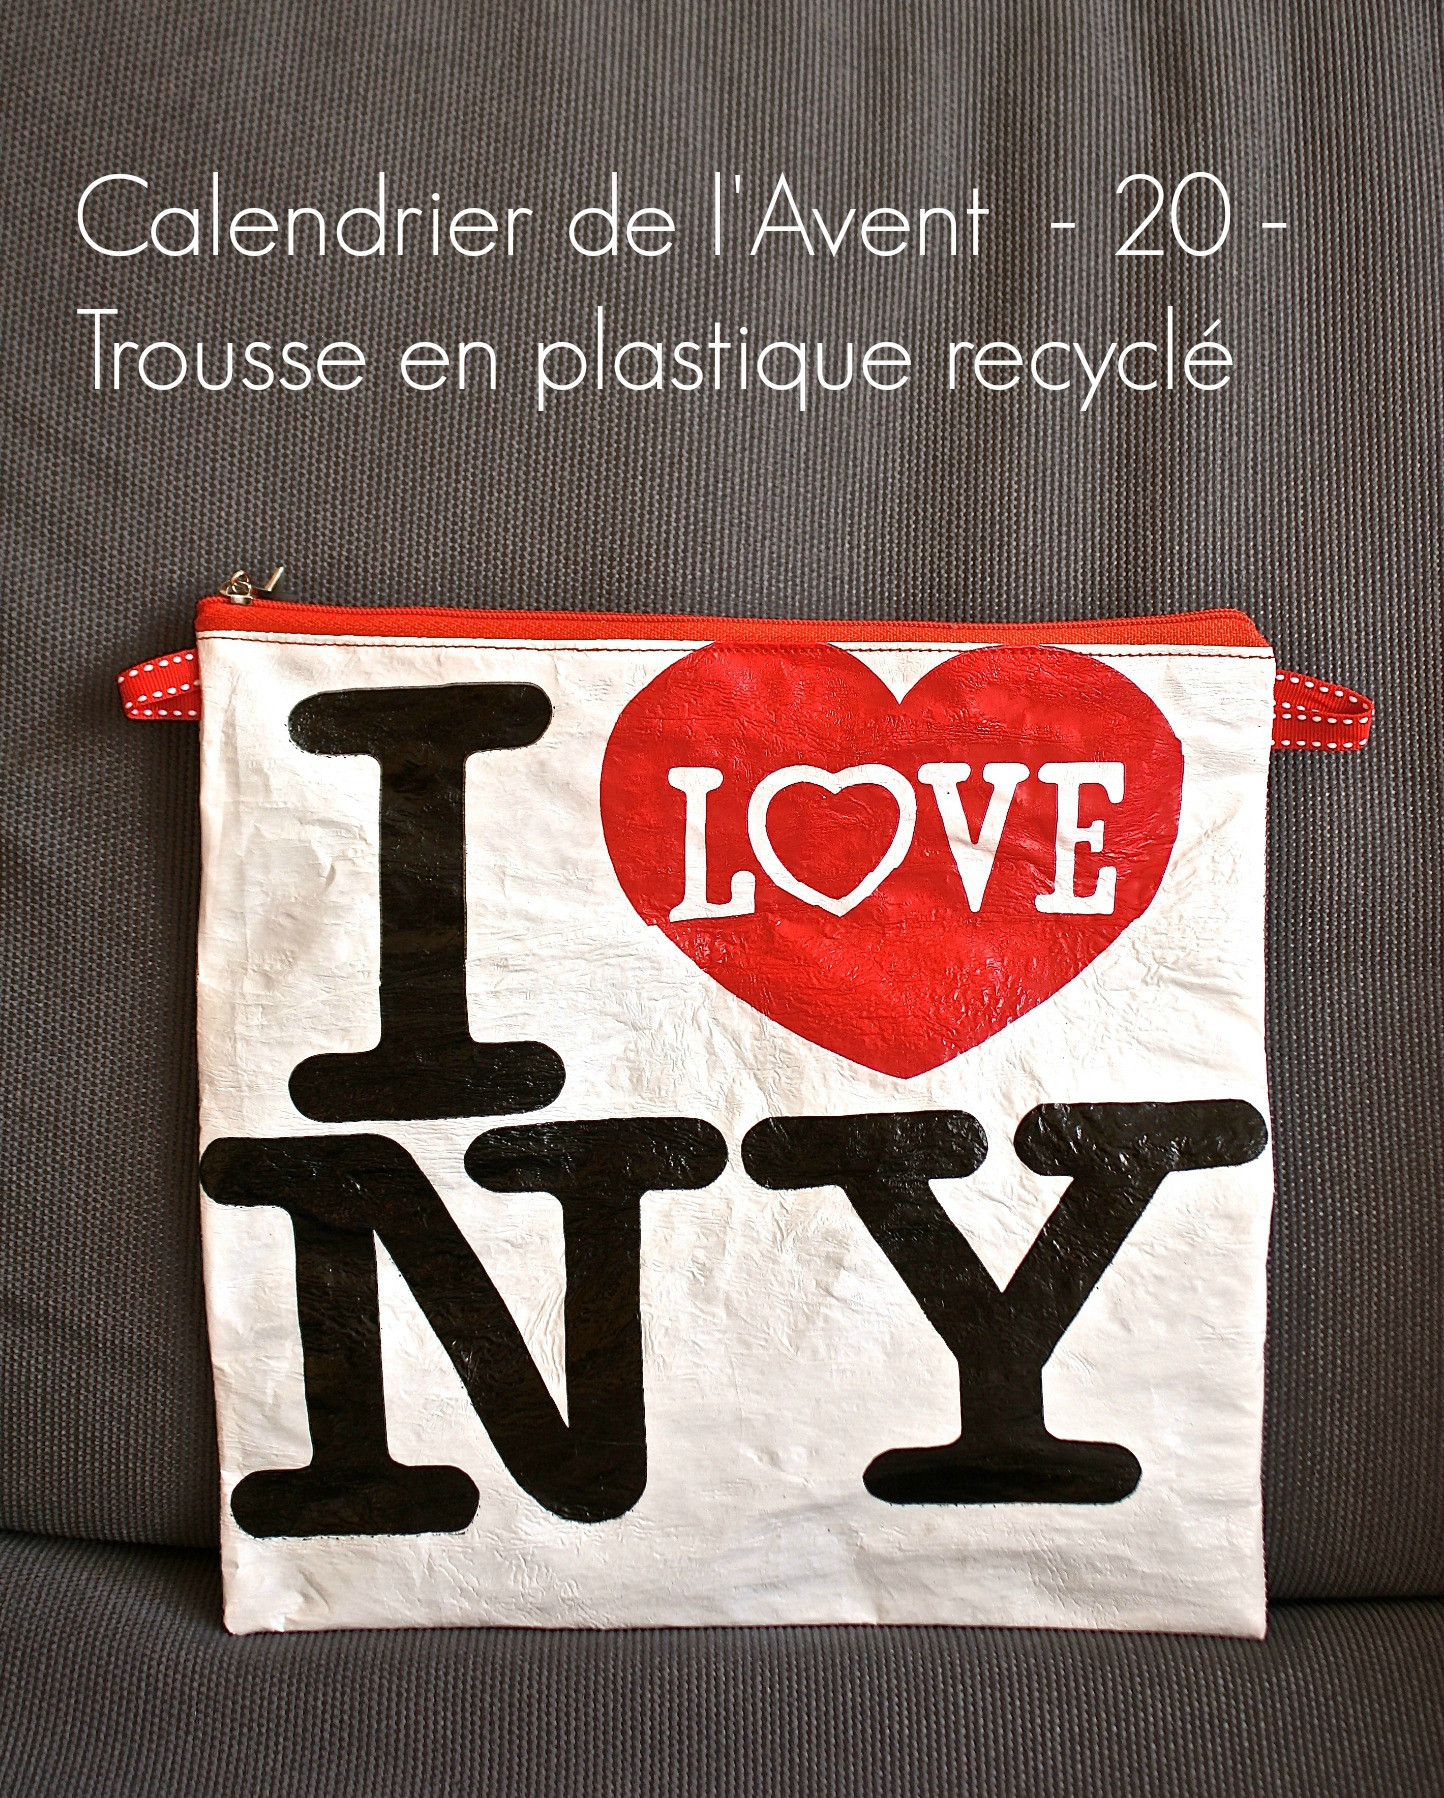 calendrier de l 39 avent 20 trousse en plastique recycl dans l 39 atelier. Black Bedroom Furniture Sets. Home Design Ideas